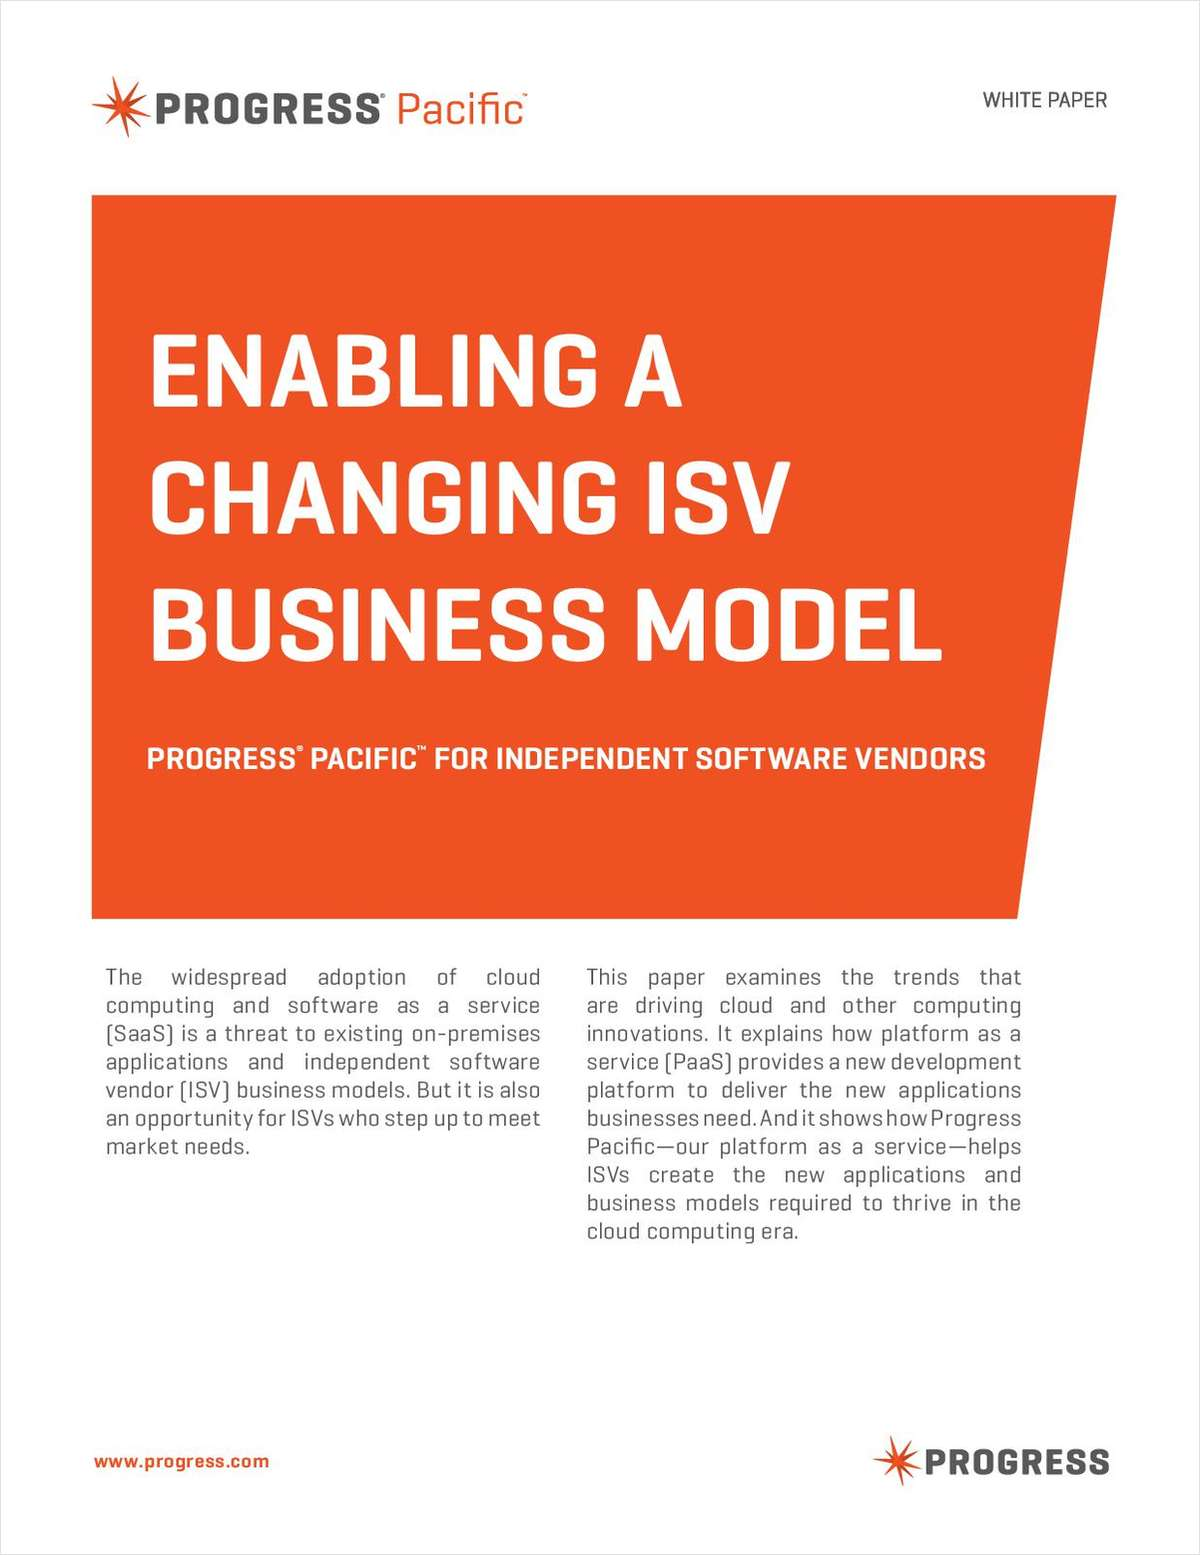 Enabling a Changing ISV Business Model